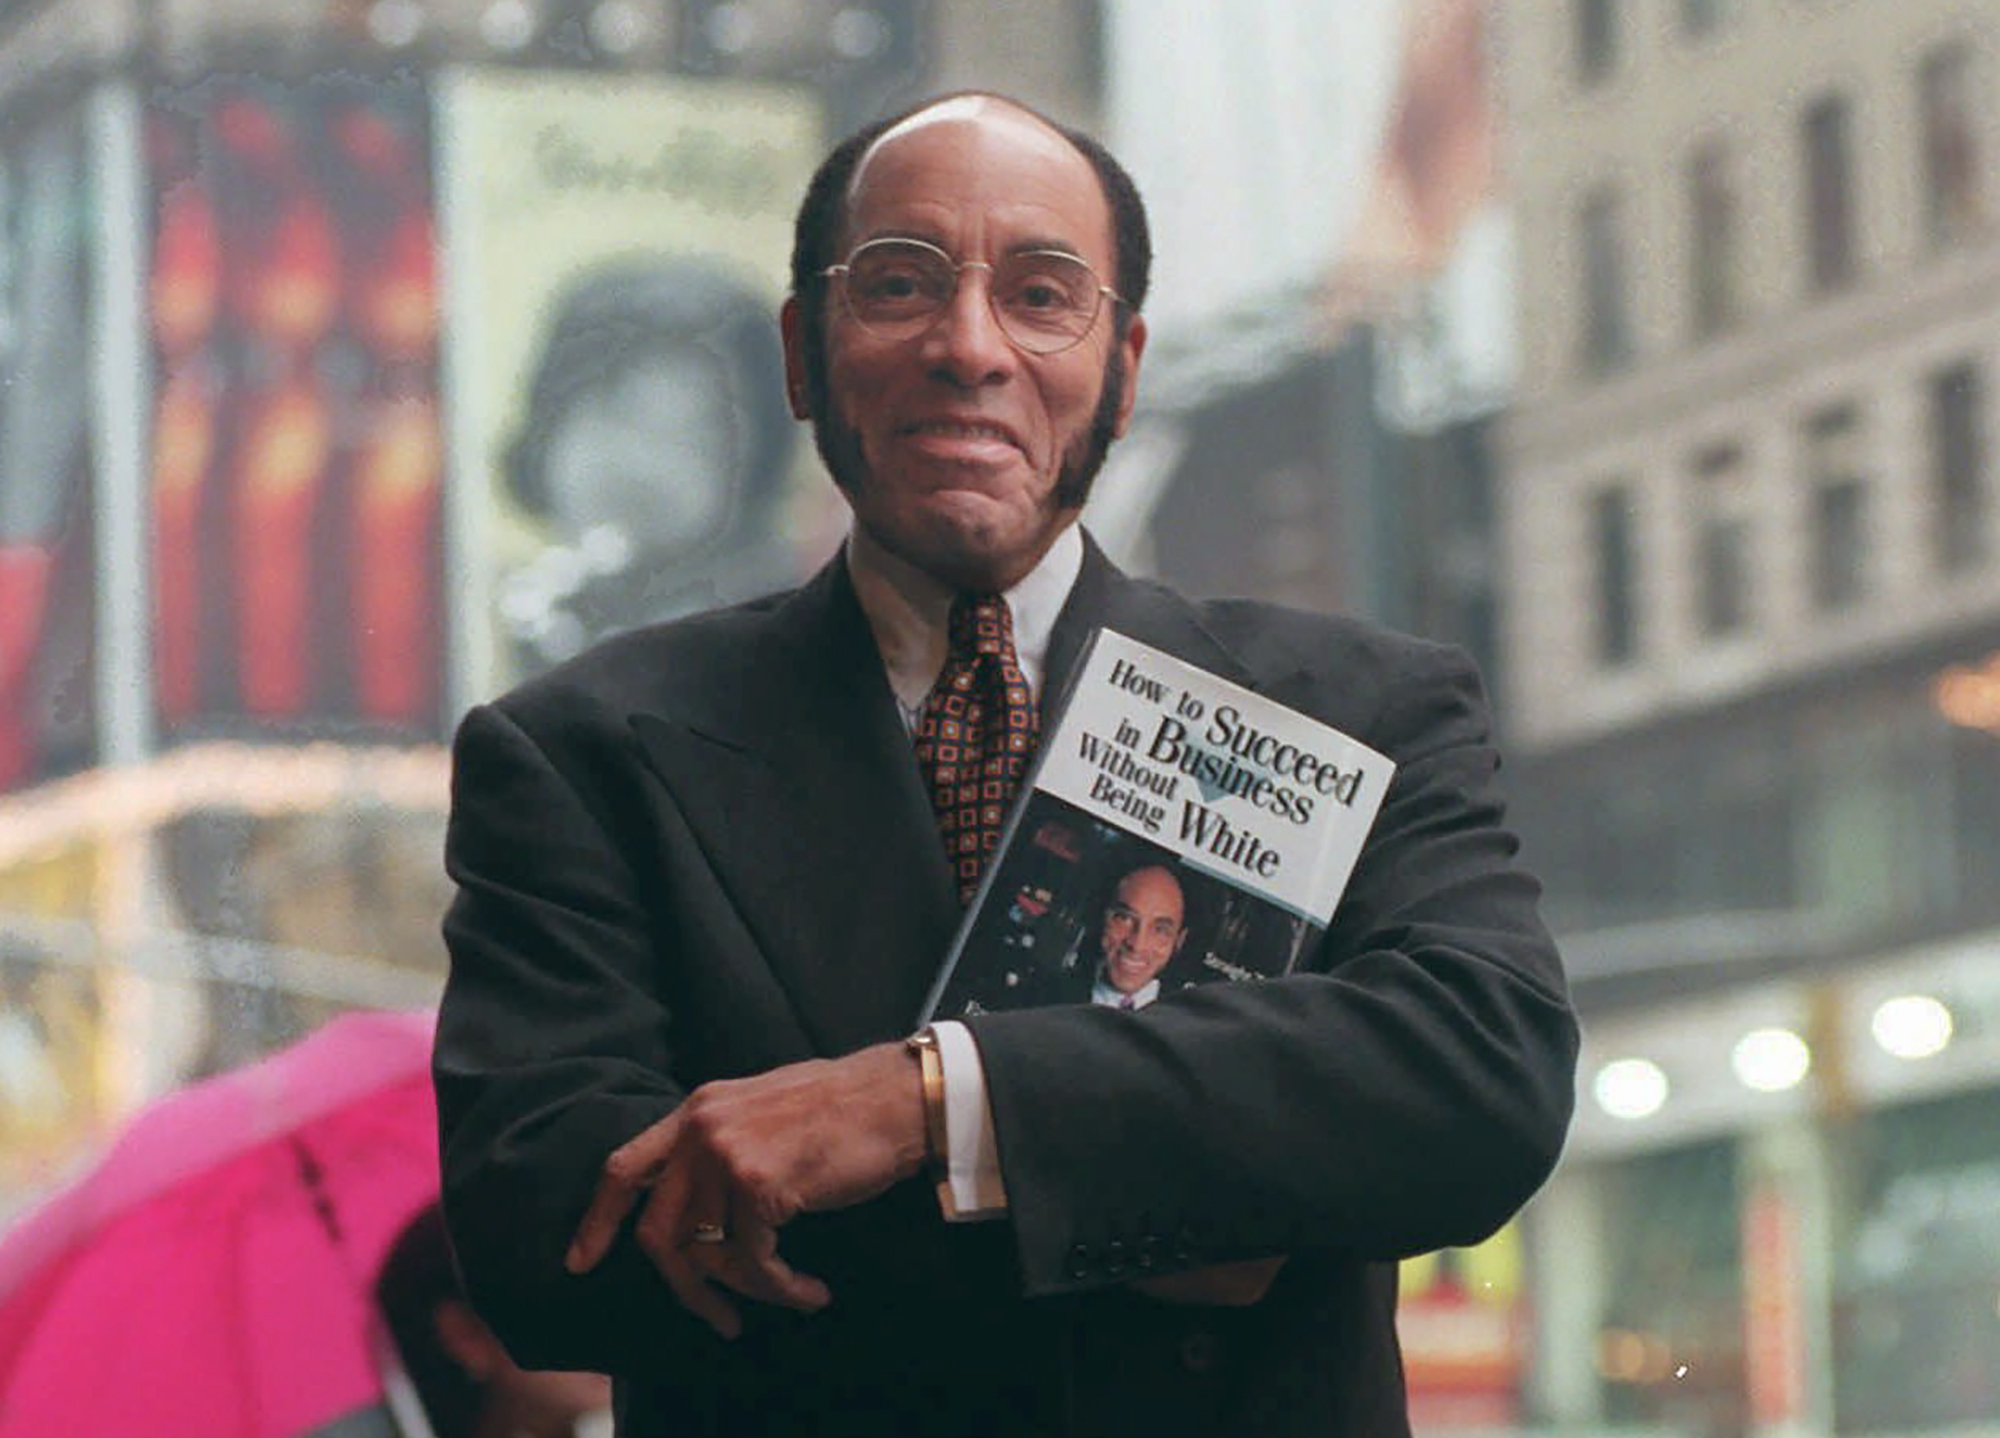 """This Aug. 17, 1997 file photo shows Earl G. Graves Sr. with his book """"How To Succeed In Business Without Being White"""" in New York. Graves Sr., who championed black businesses as the founder of the first African American-owned magazine focusing on black entrepreneurs, has died. He was 85. His son said Graves died Monday, April 6, 2020. (AP Photo/Bebeto Matthews, File)"""